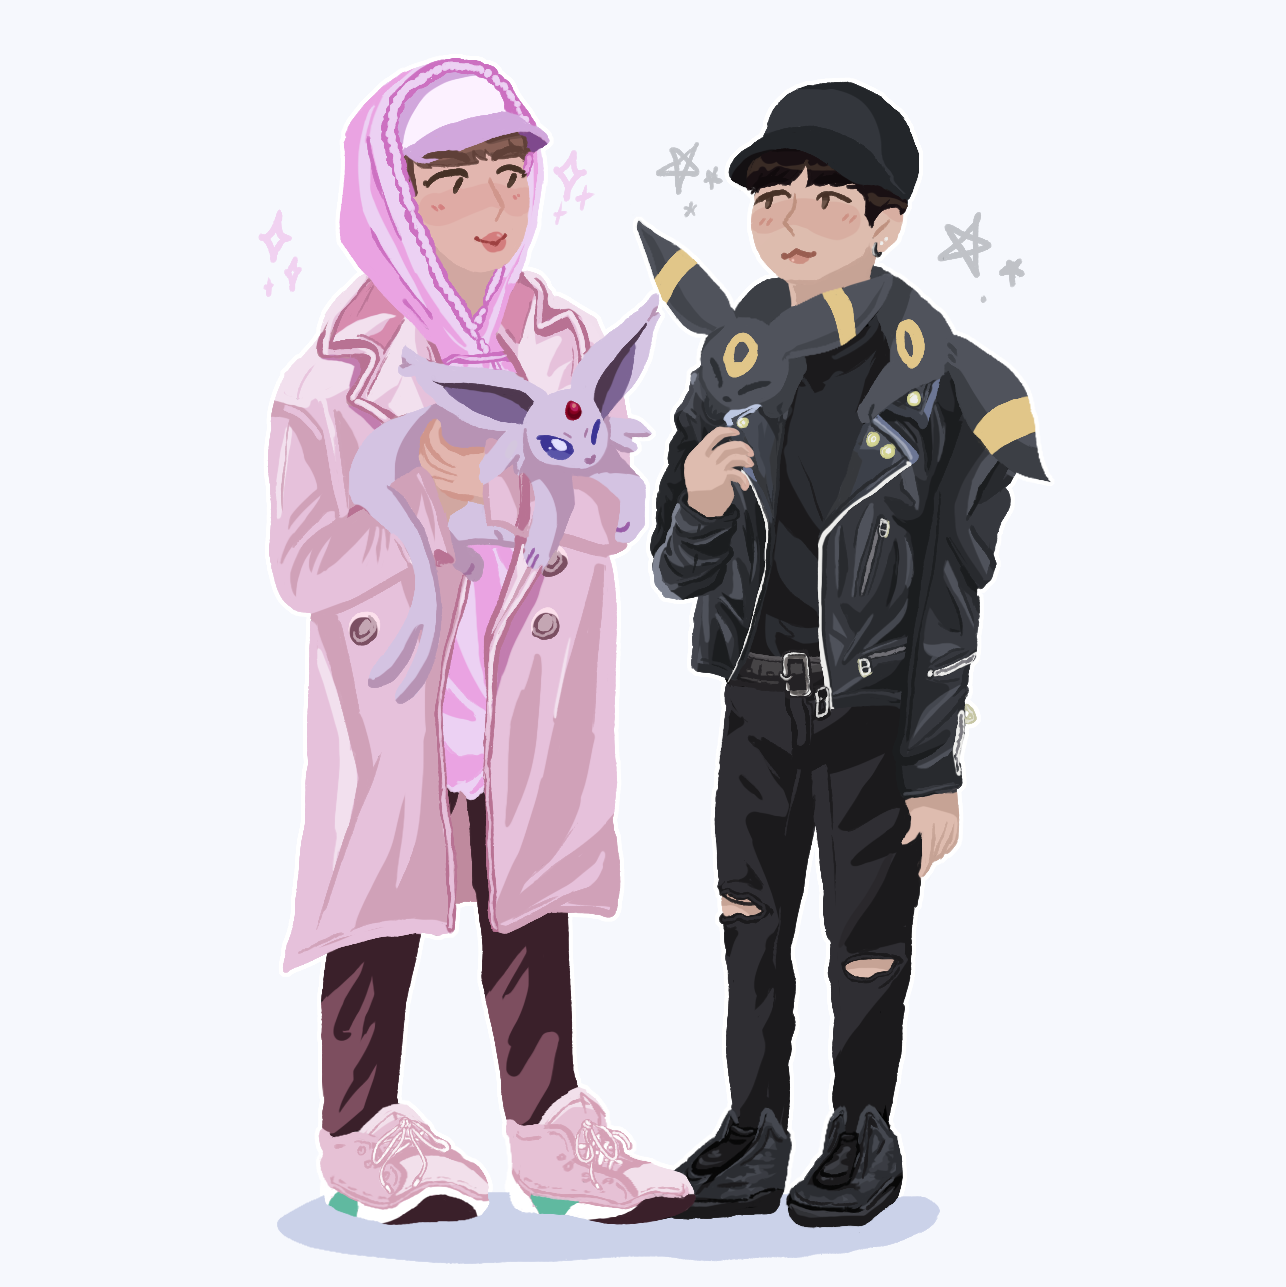 yoonjin but they got pokemon by ThatCreativeCat